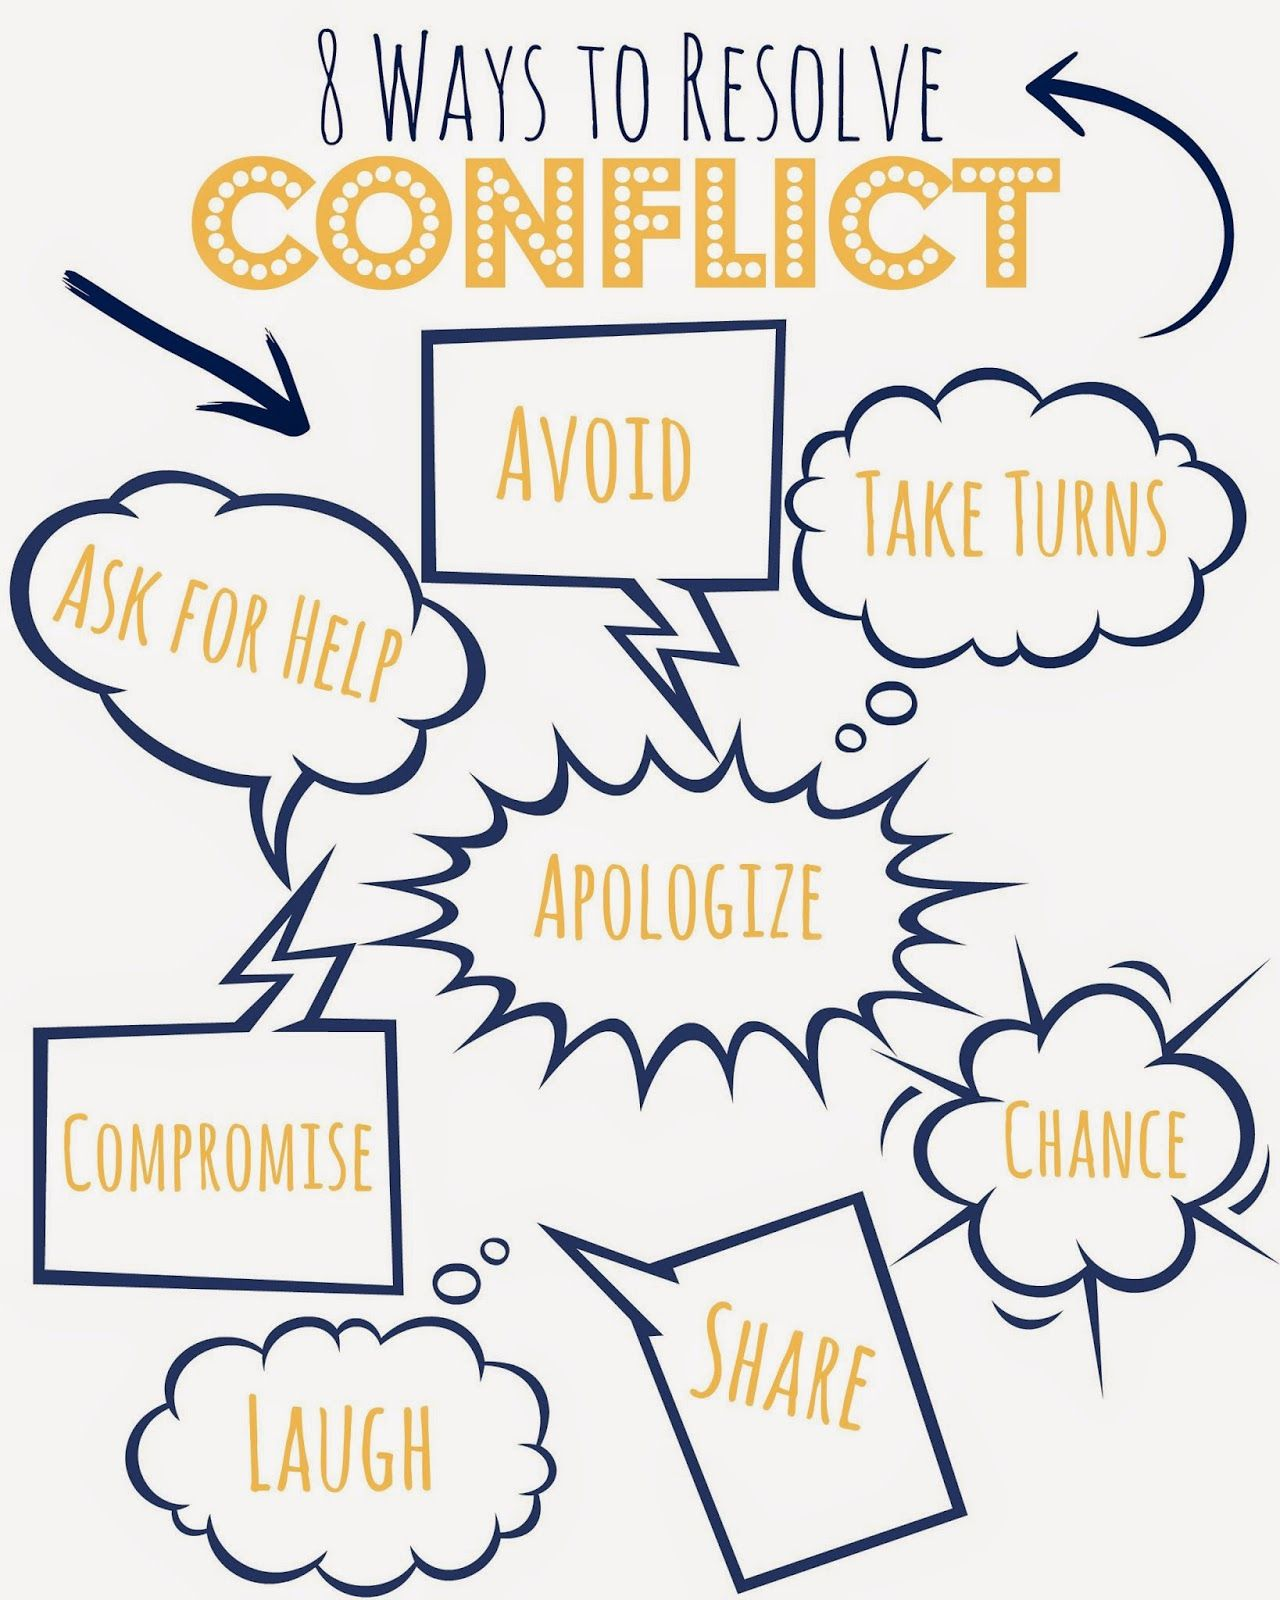 conflict resolution work teams essays Team dynamics and conflict resolution in work teams 966 words | 4 pages in addition to learning styles, diversity amongst team members must be recognized and.